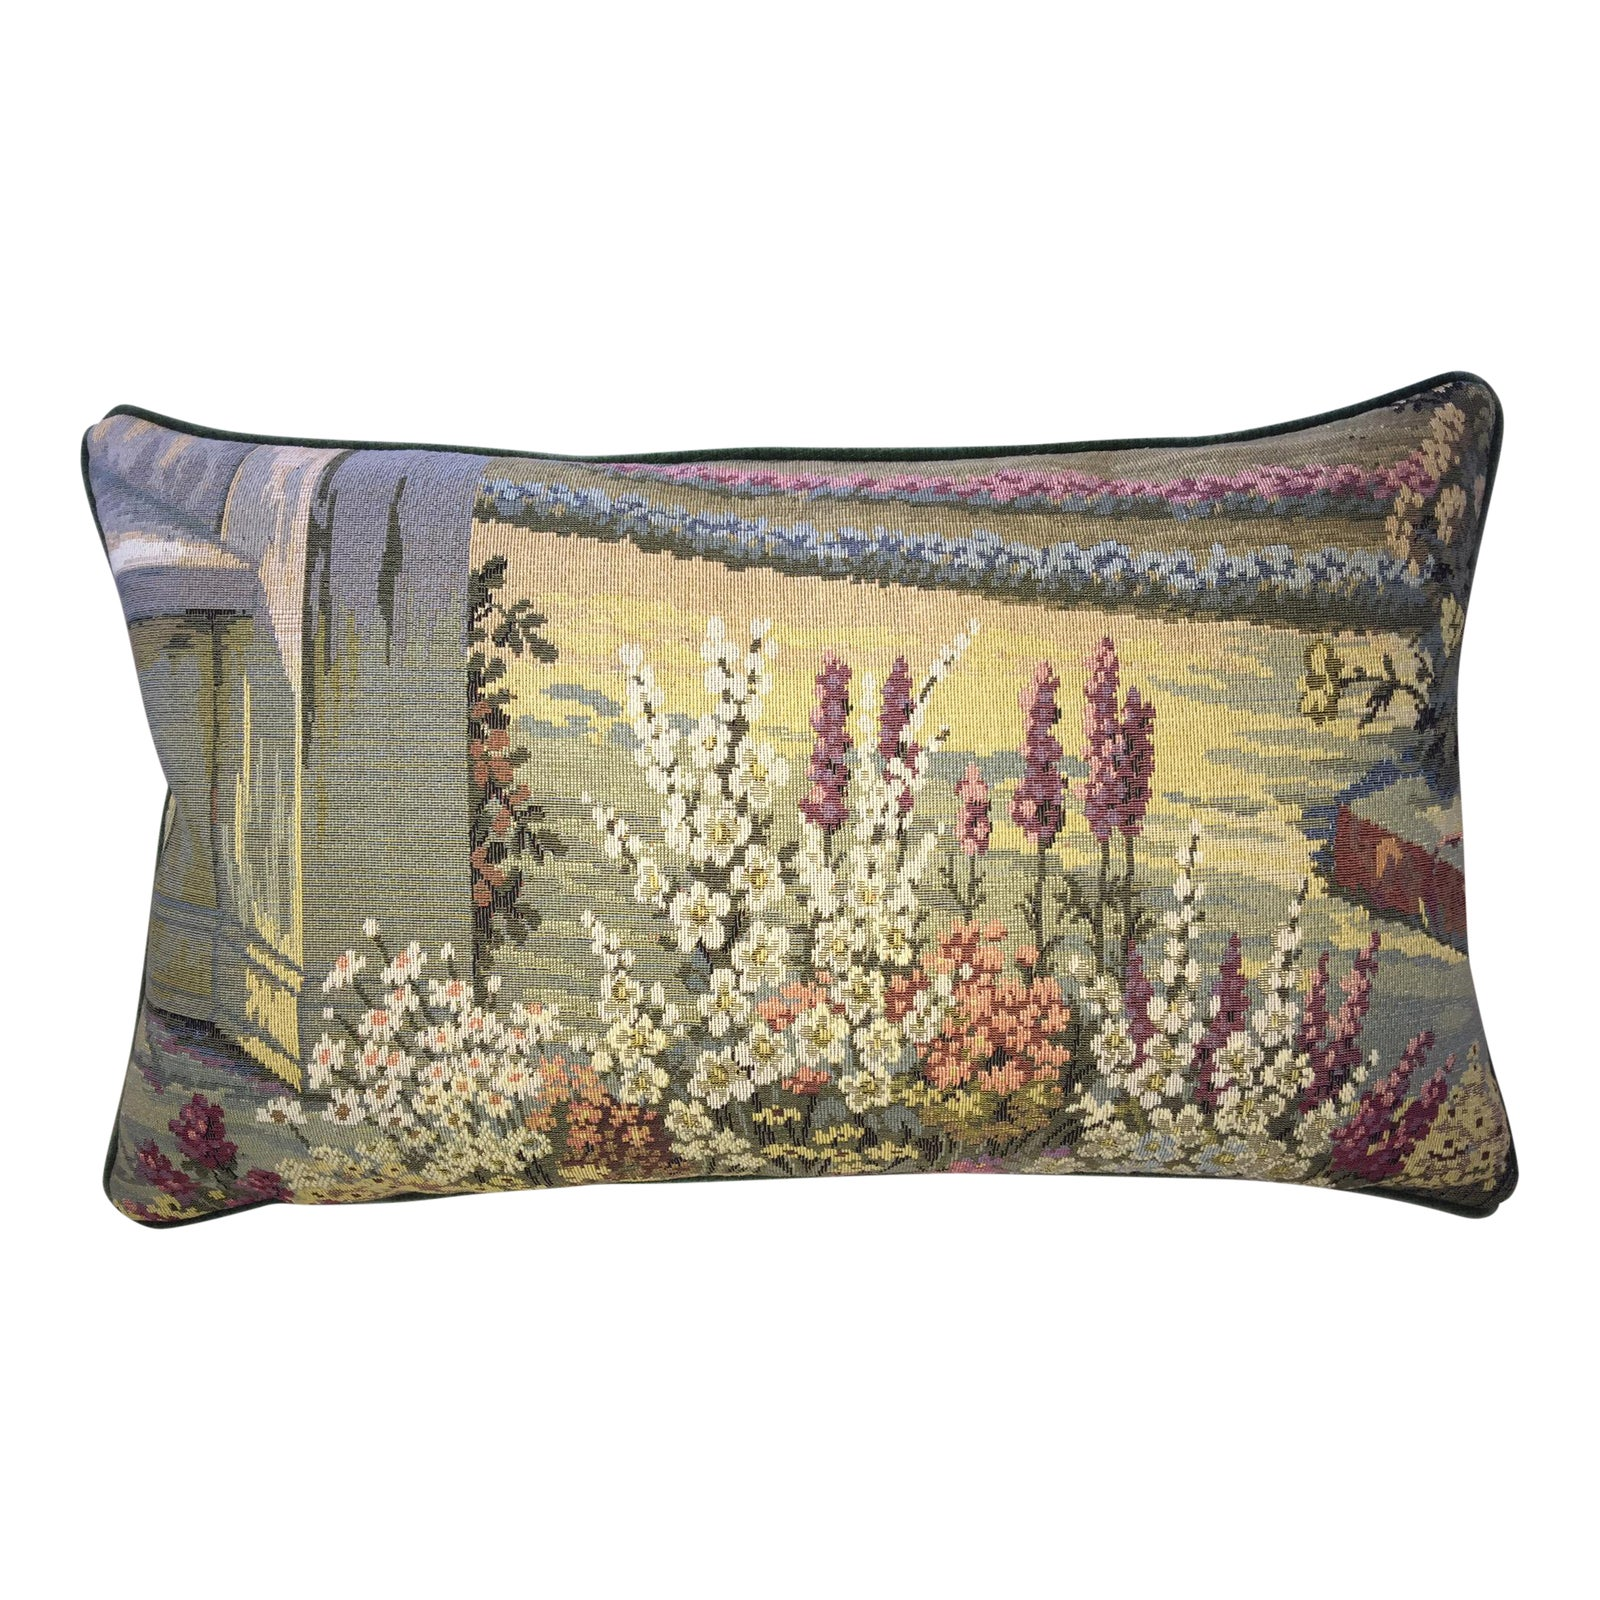 Vintage Italian Tapestry Lumbar Accent Pillow Cover Chairish